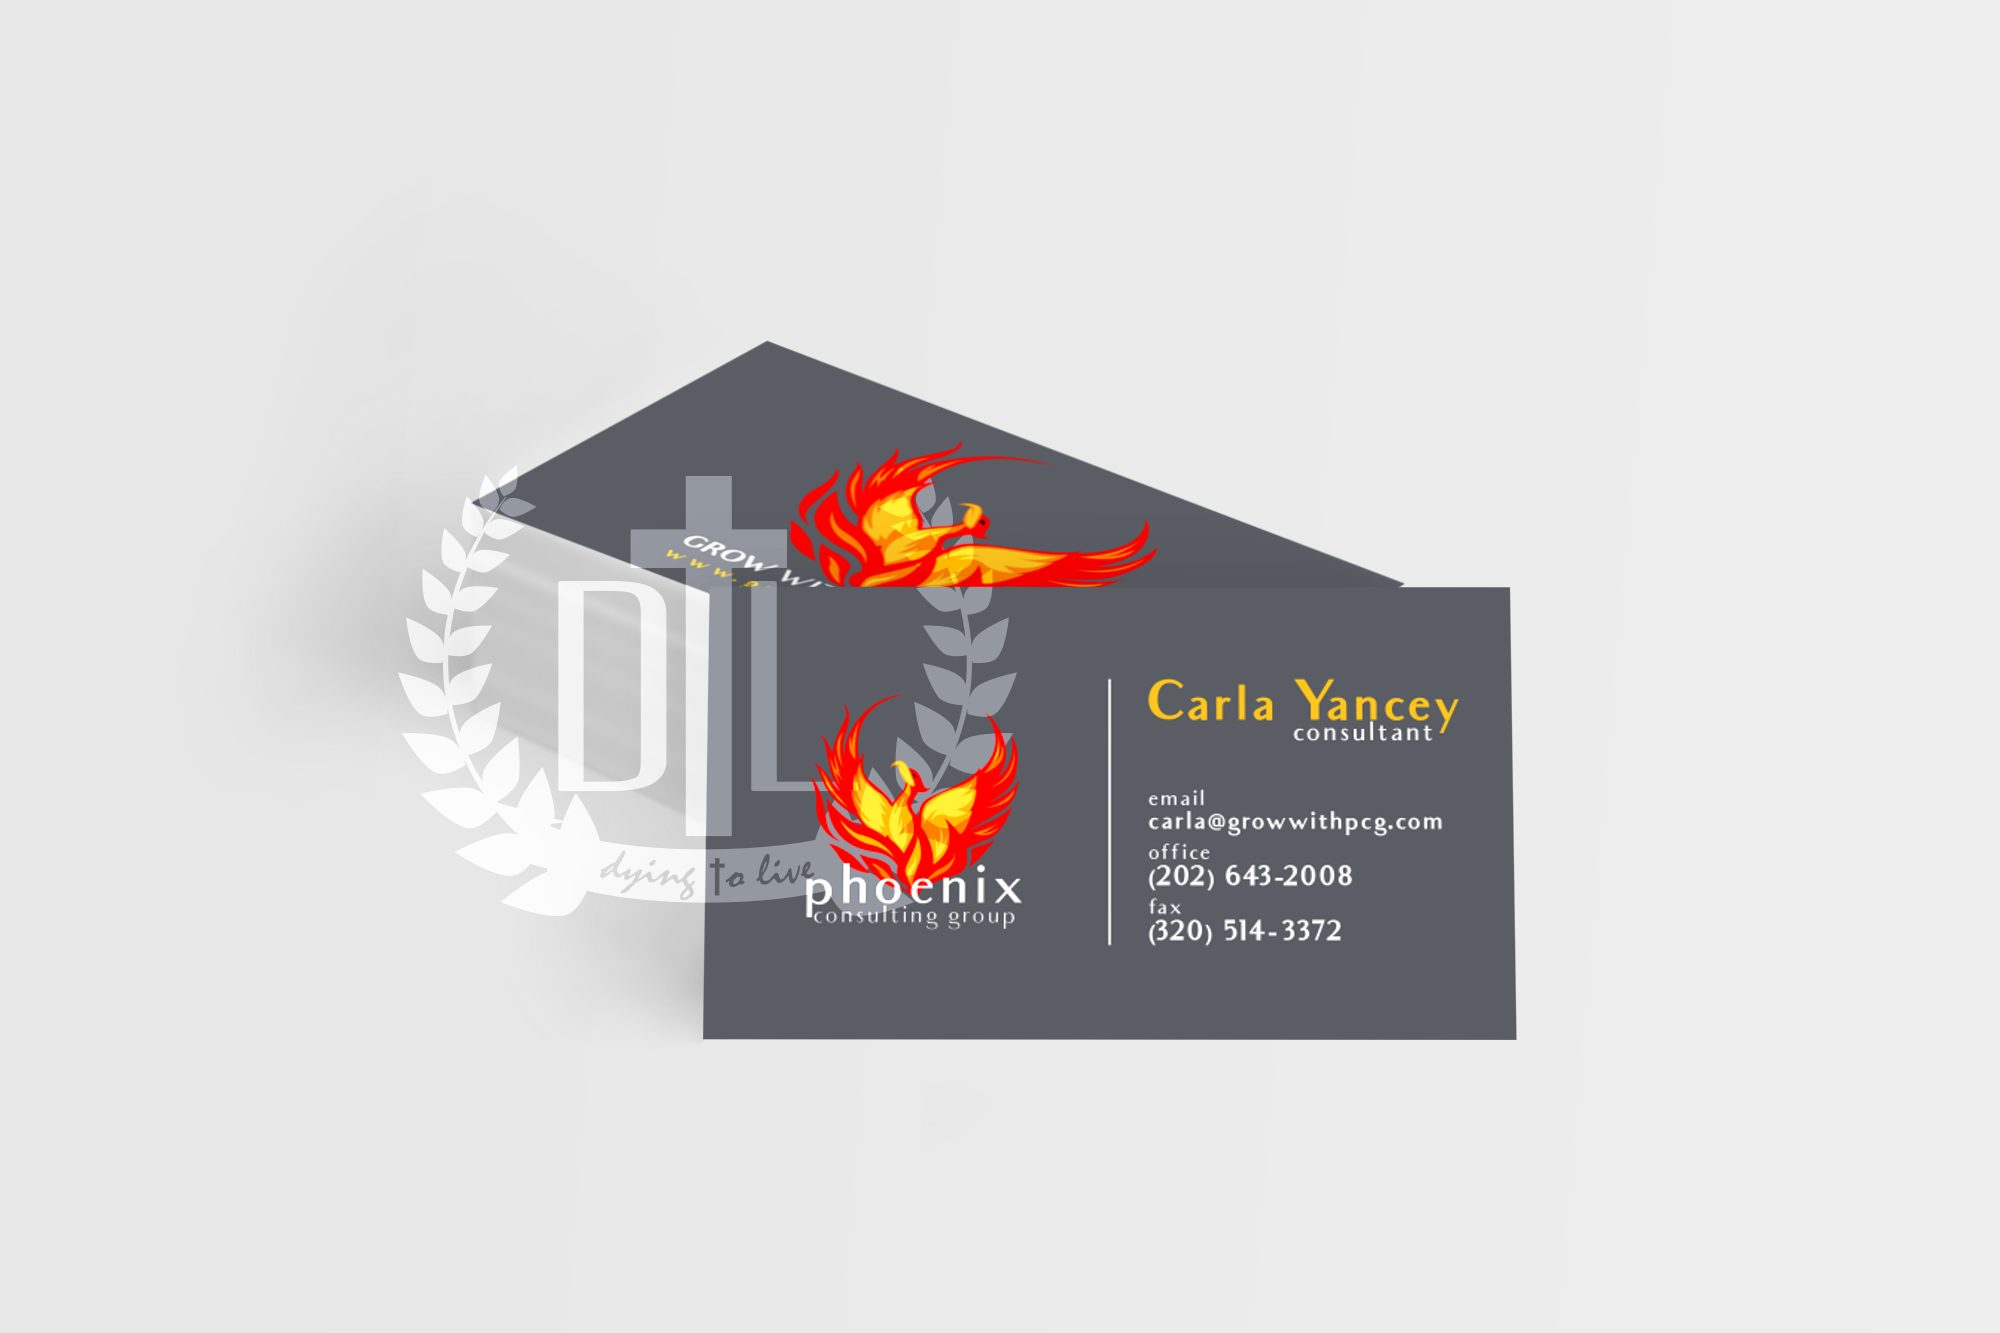 Phoenix Consulting Group Business Card